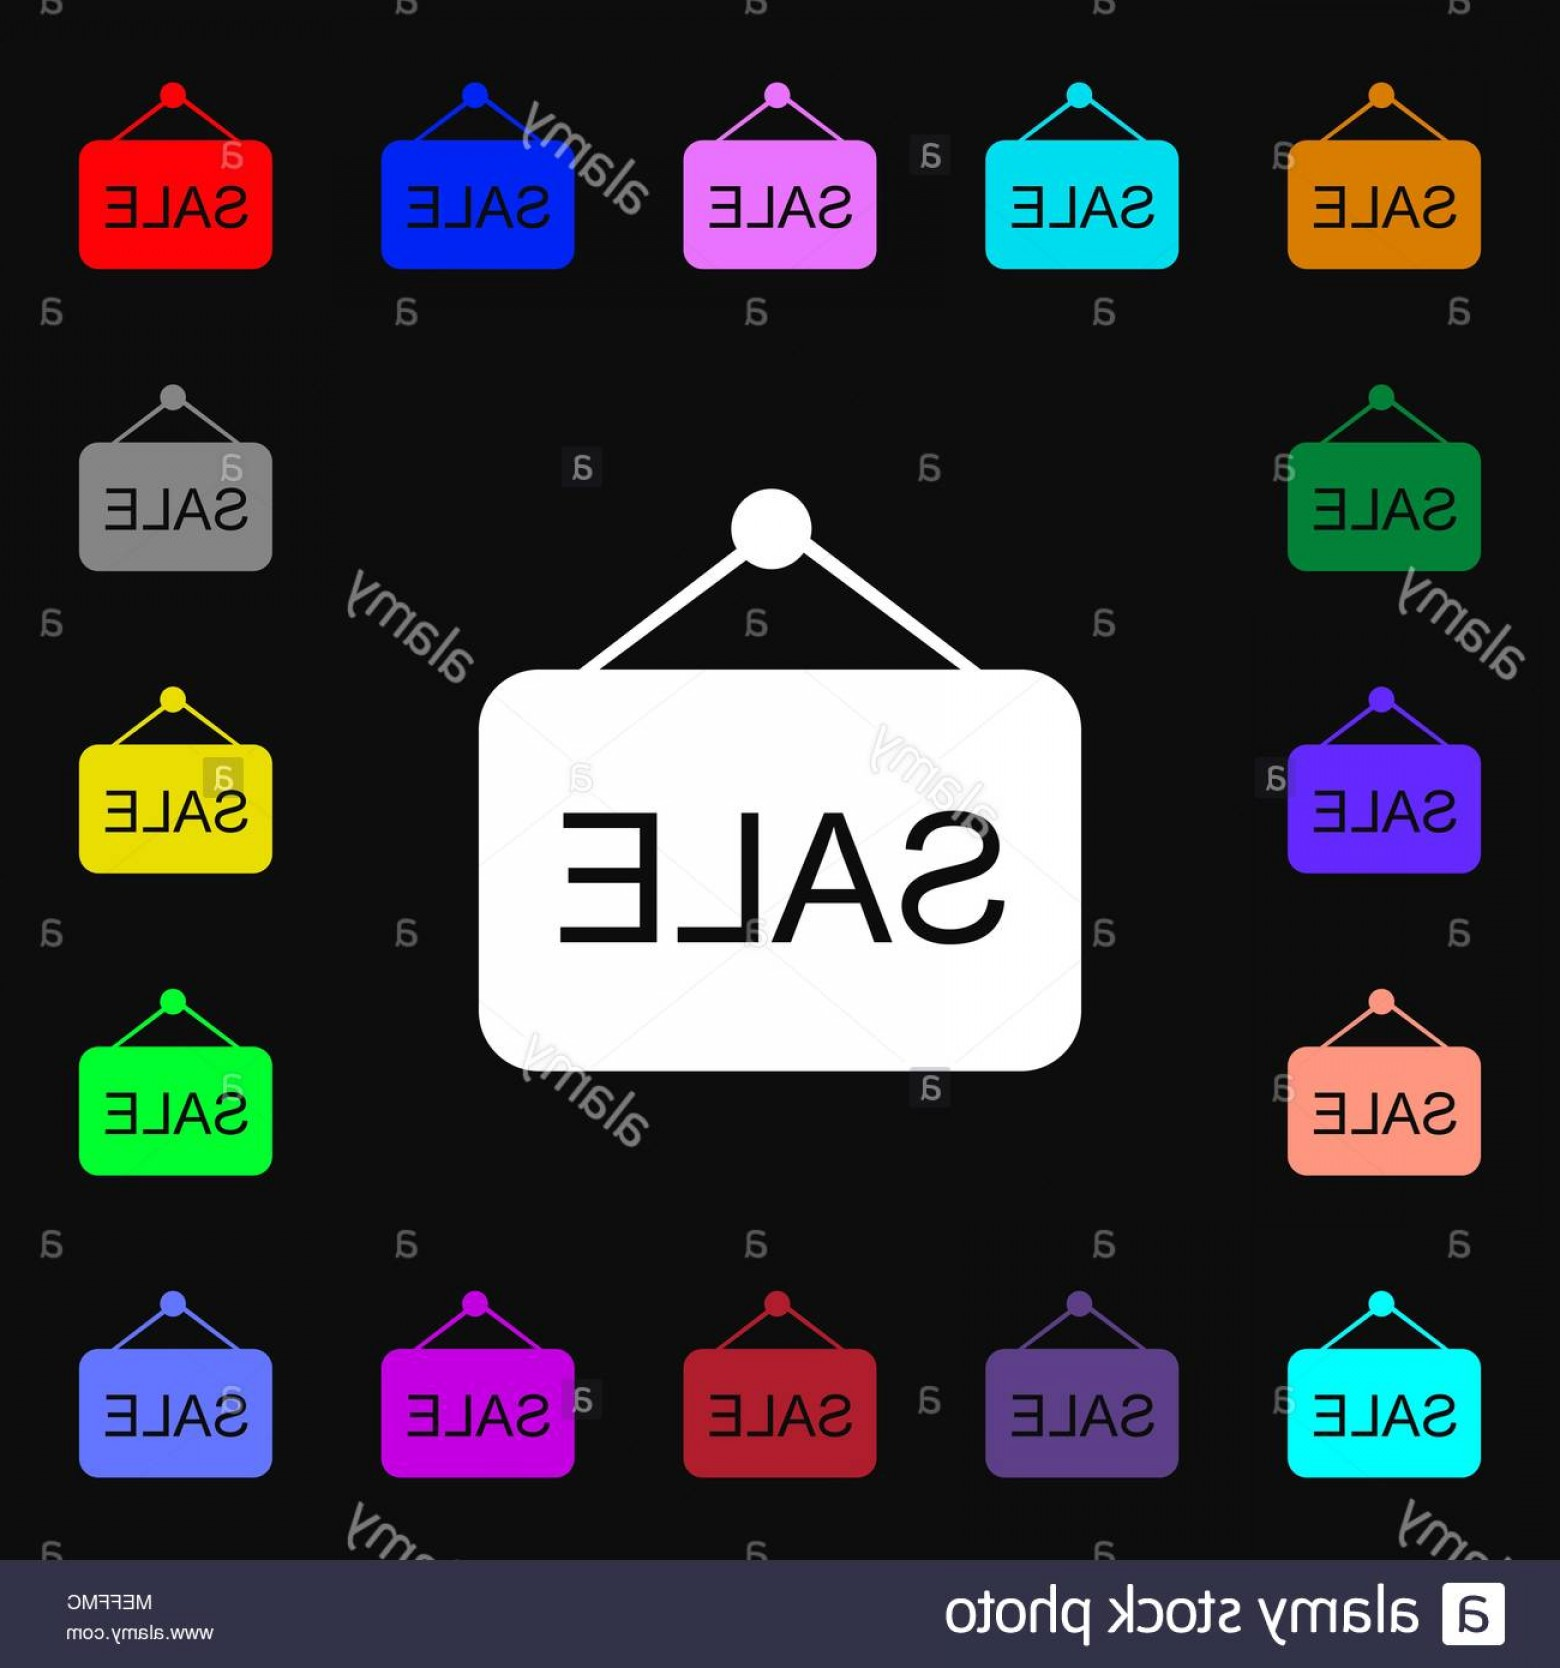 MeeGo Logo Vector: Sale Icon Sign Lots Of Colorful Symbols For Your Design Vector Illustration Image